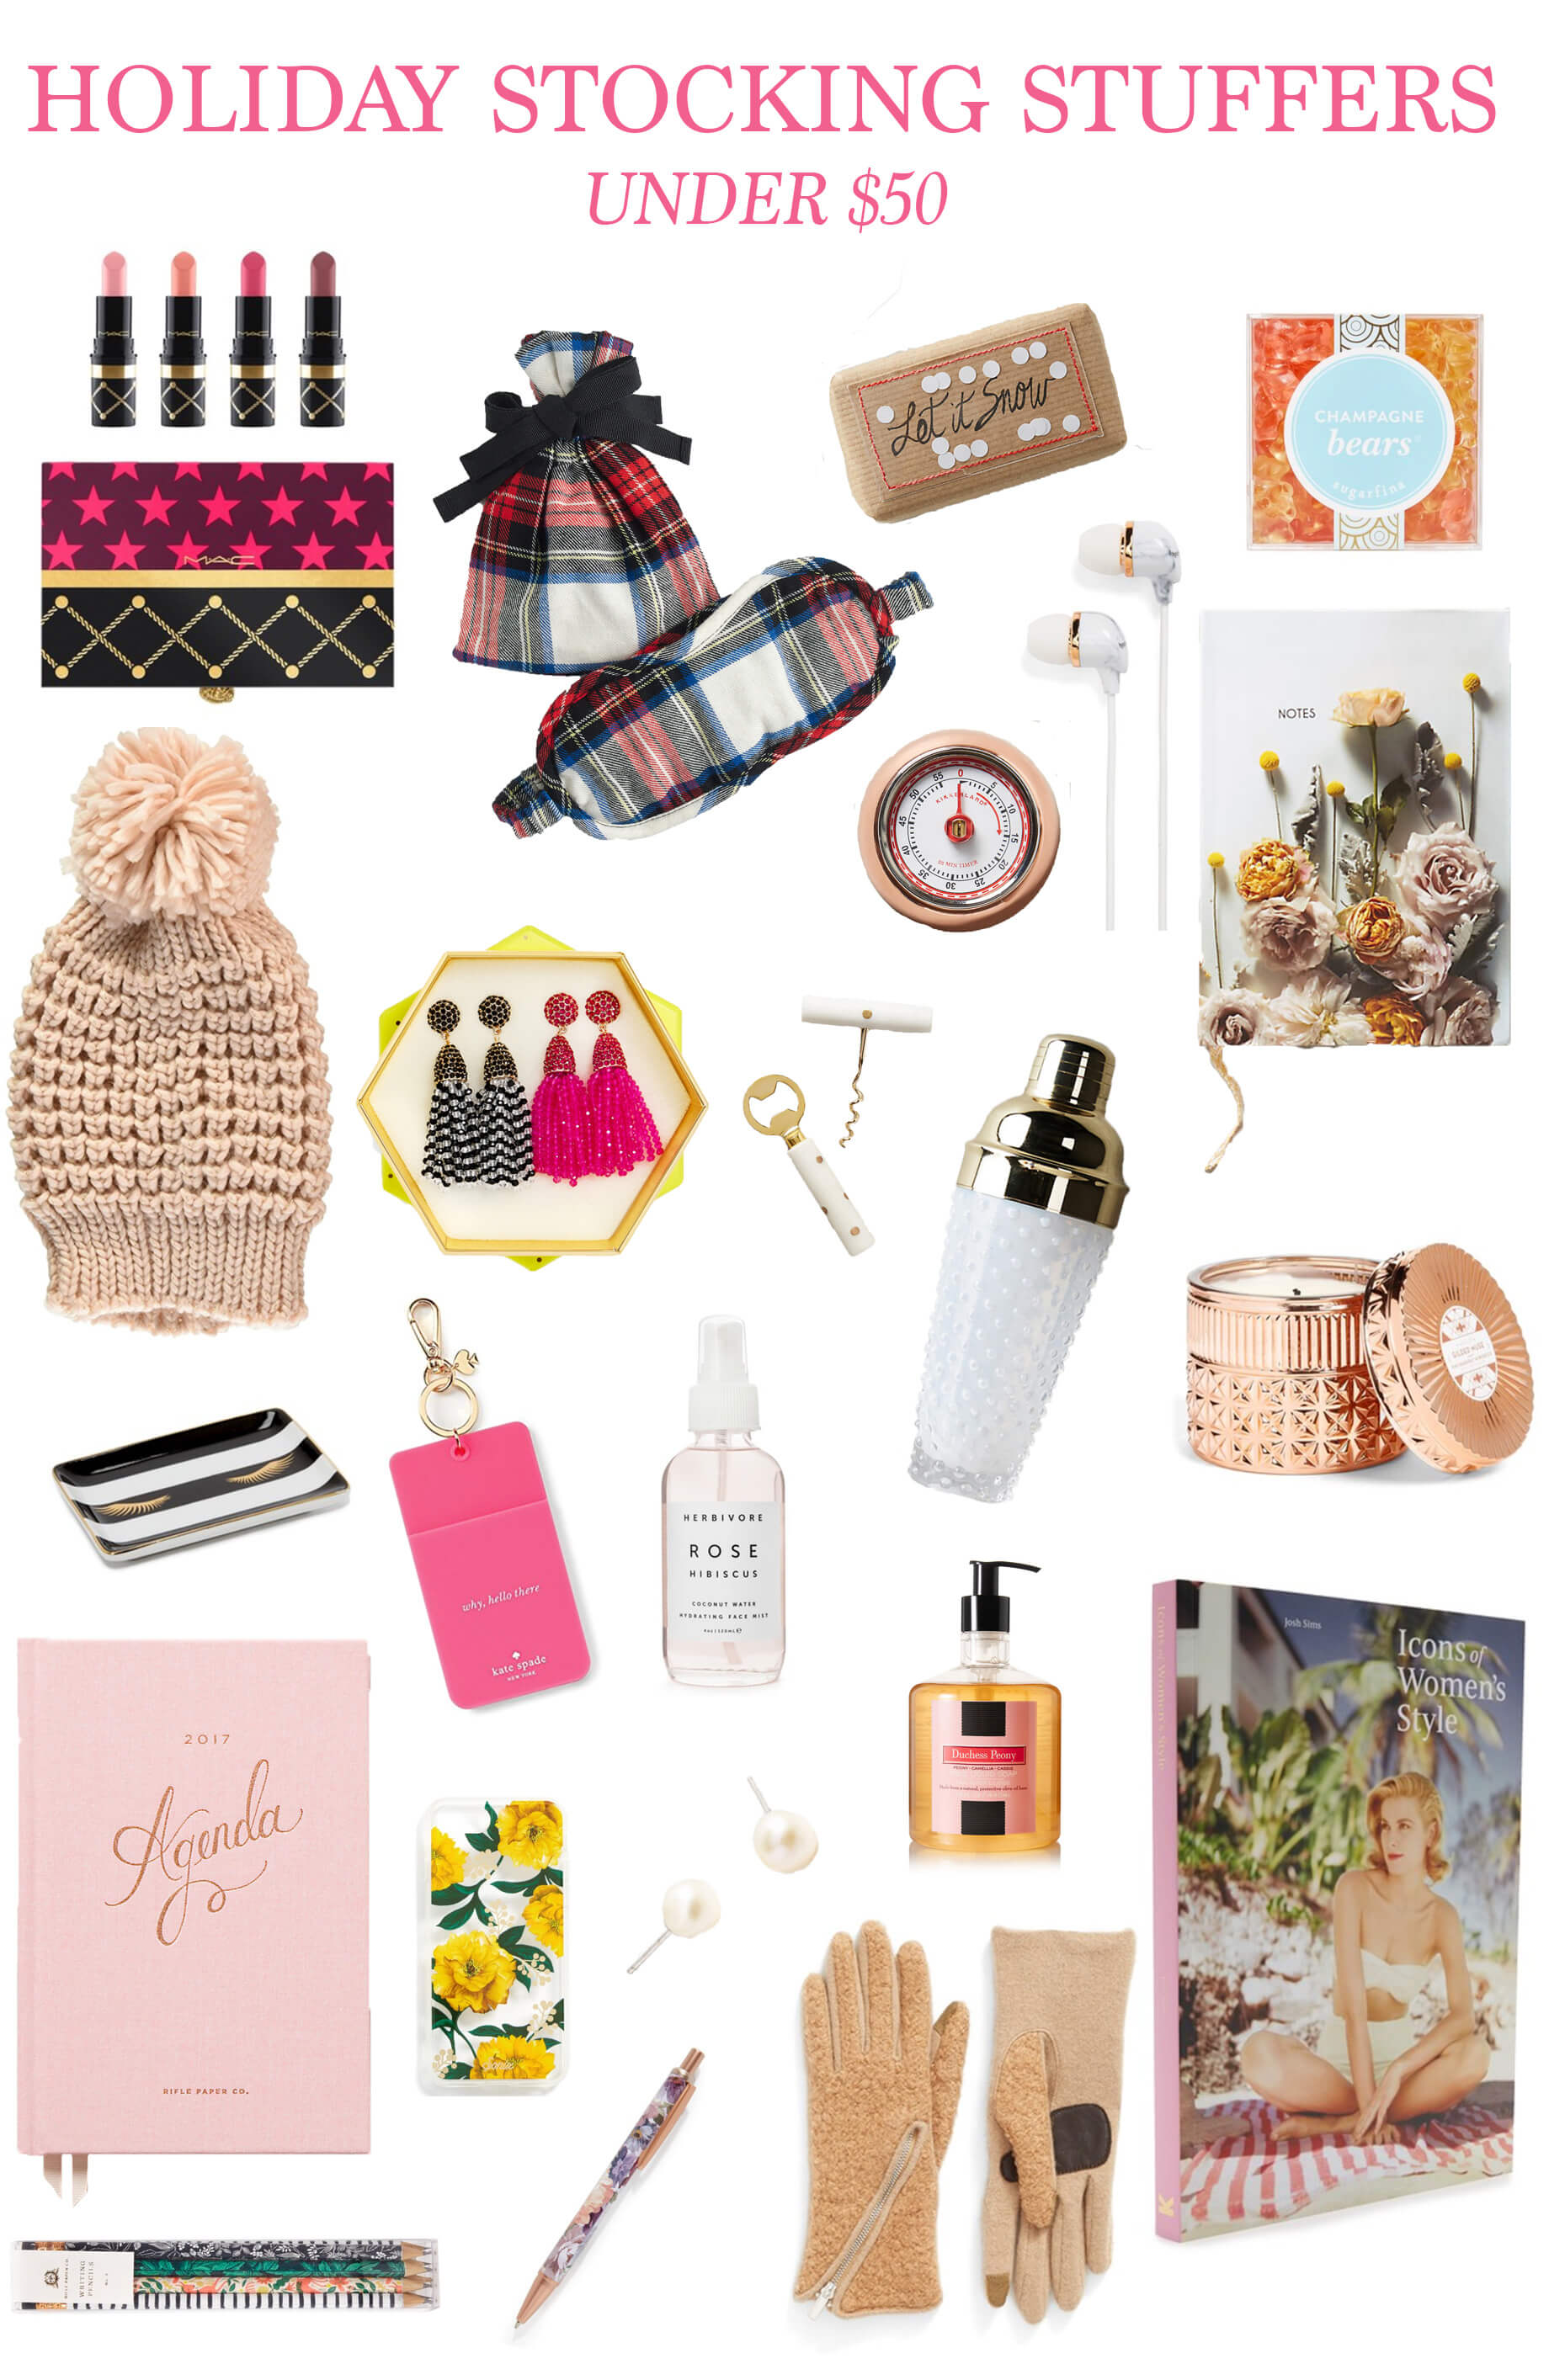 The Best Holiday Stocking Stuffers Under $50